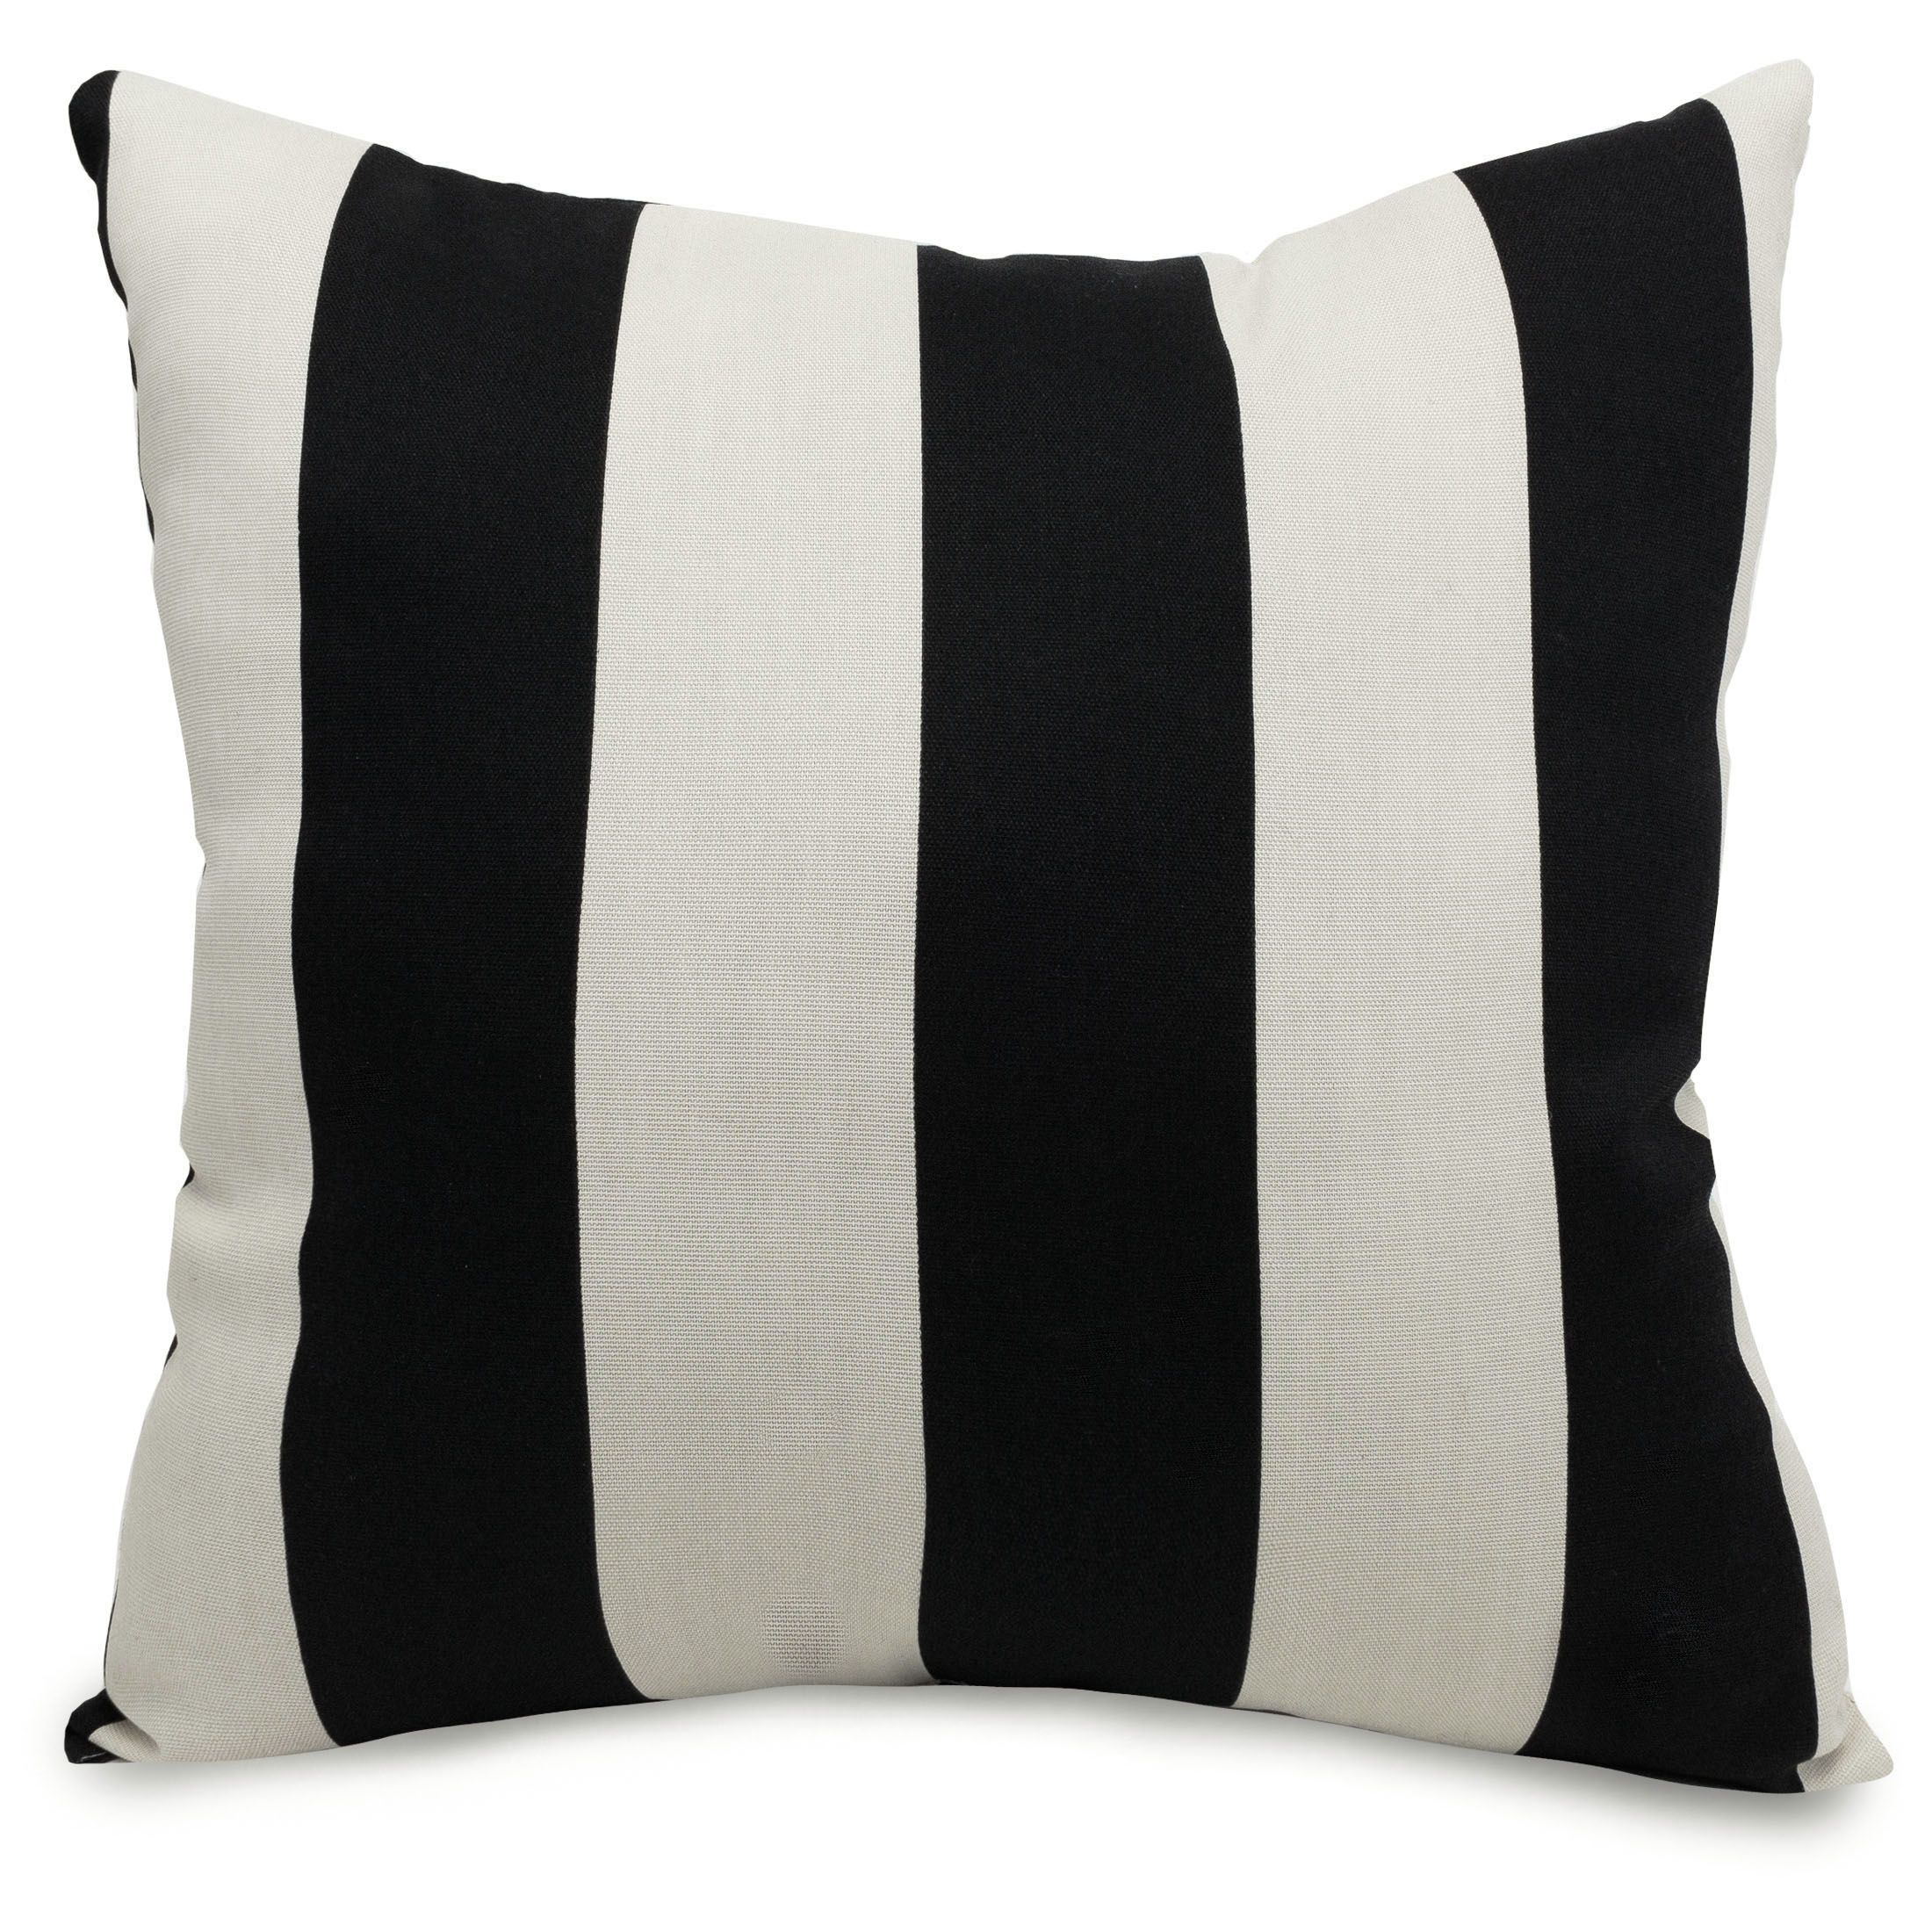 Image Result For Black Pillows Extra Large Throw Pillows Outdoor Throw Pillows Throw Pillows Extra large throw pillows